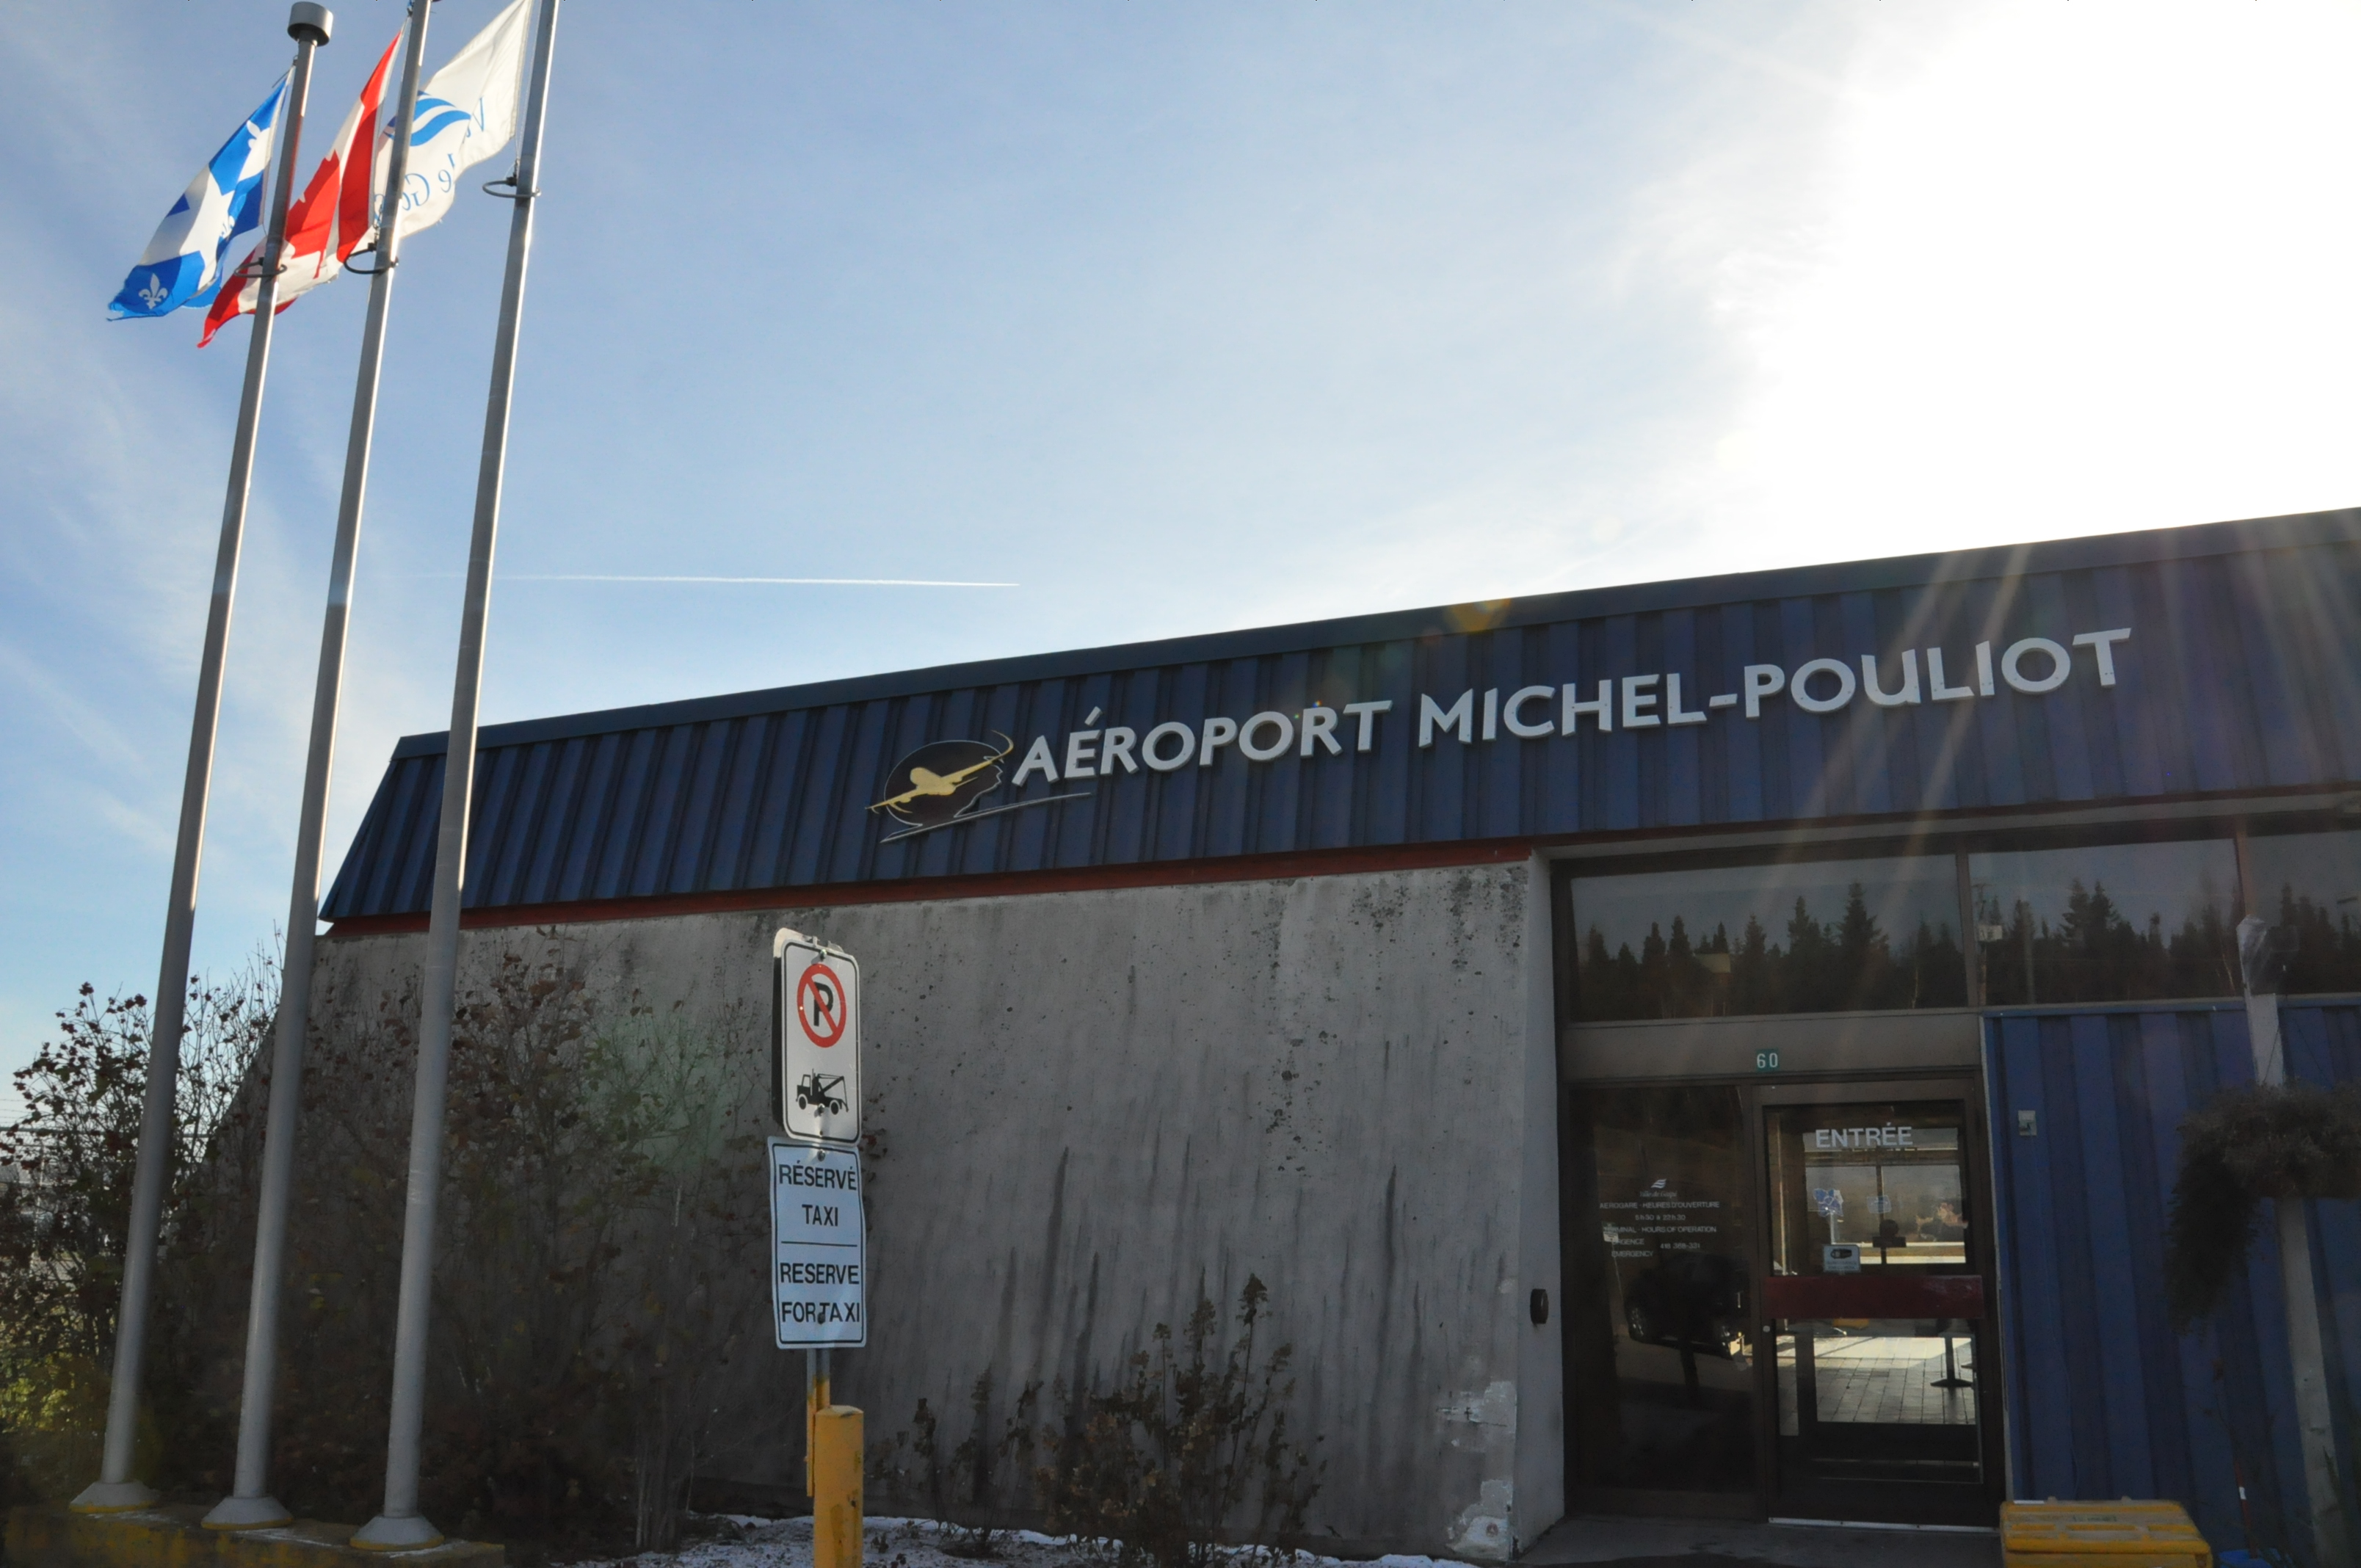 Aéroport Michel-Pouliot